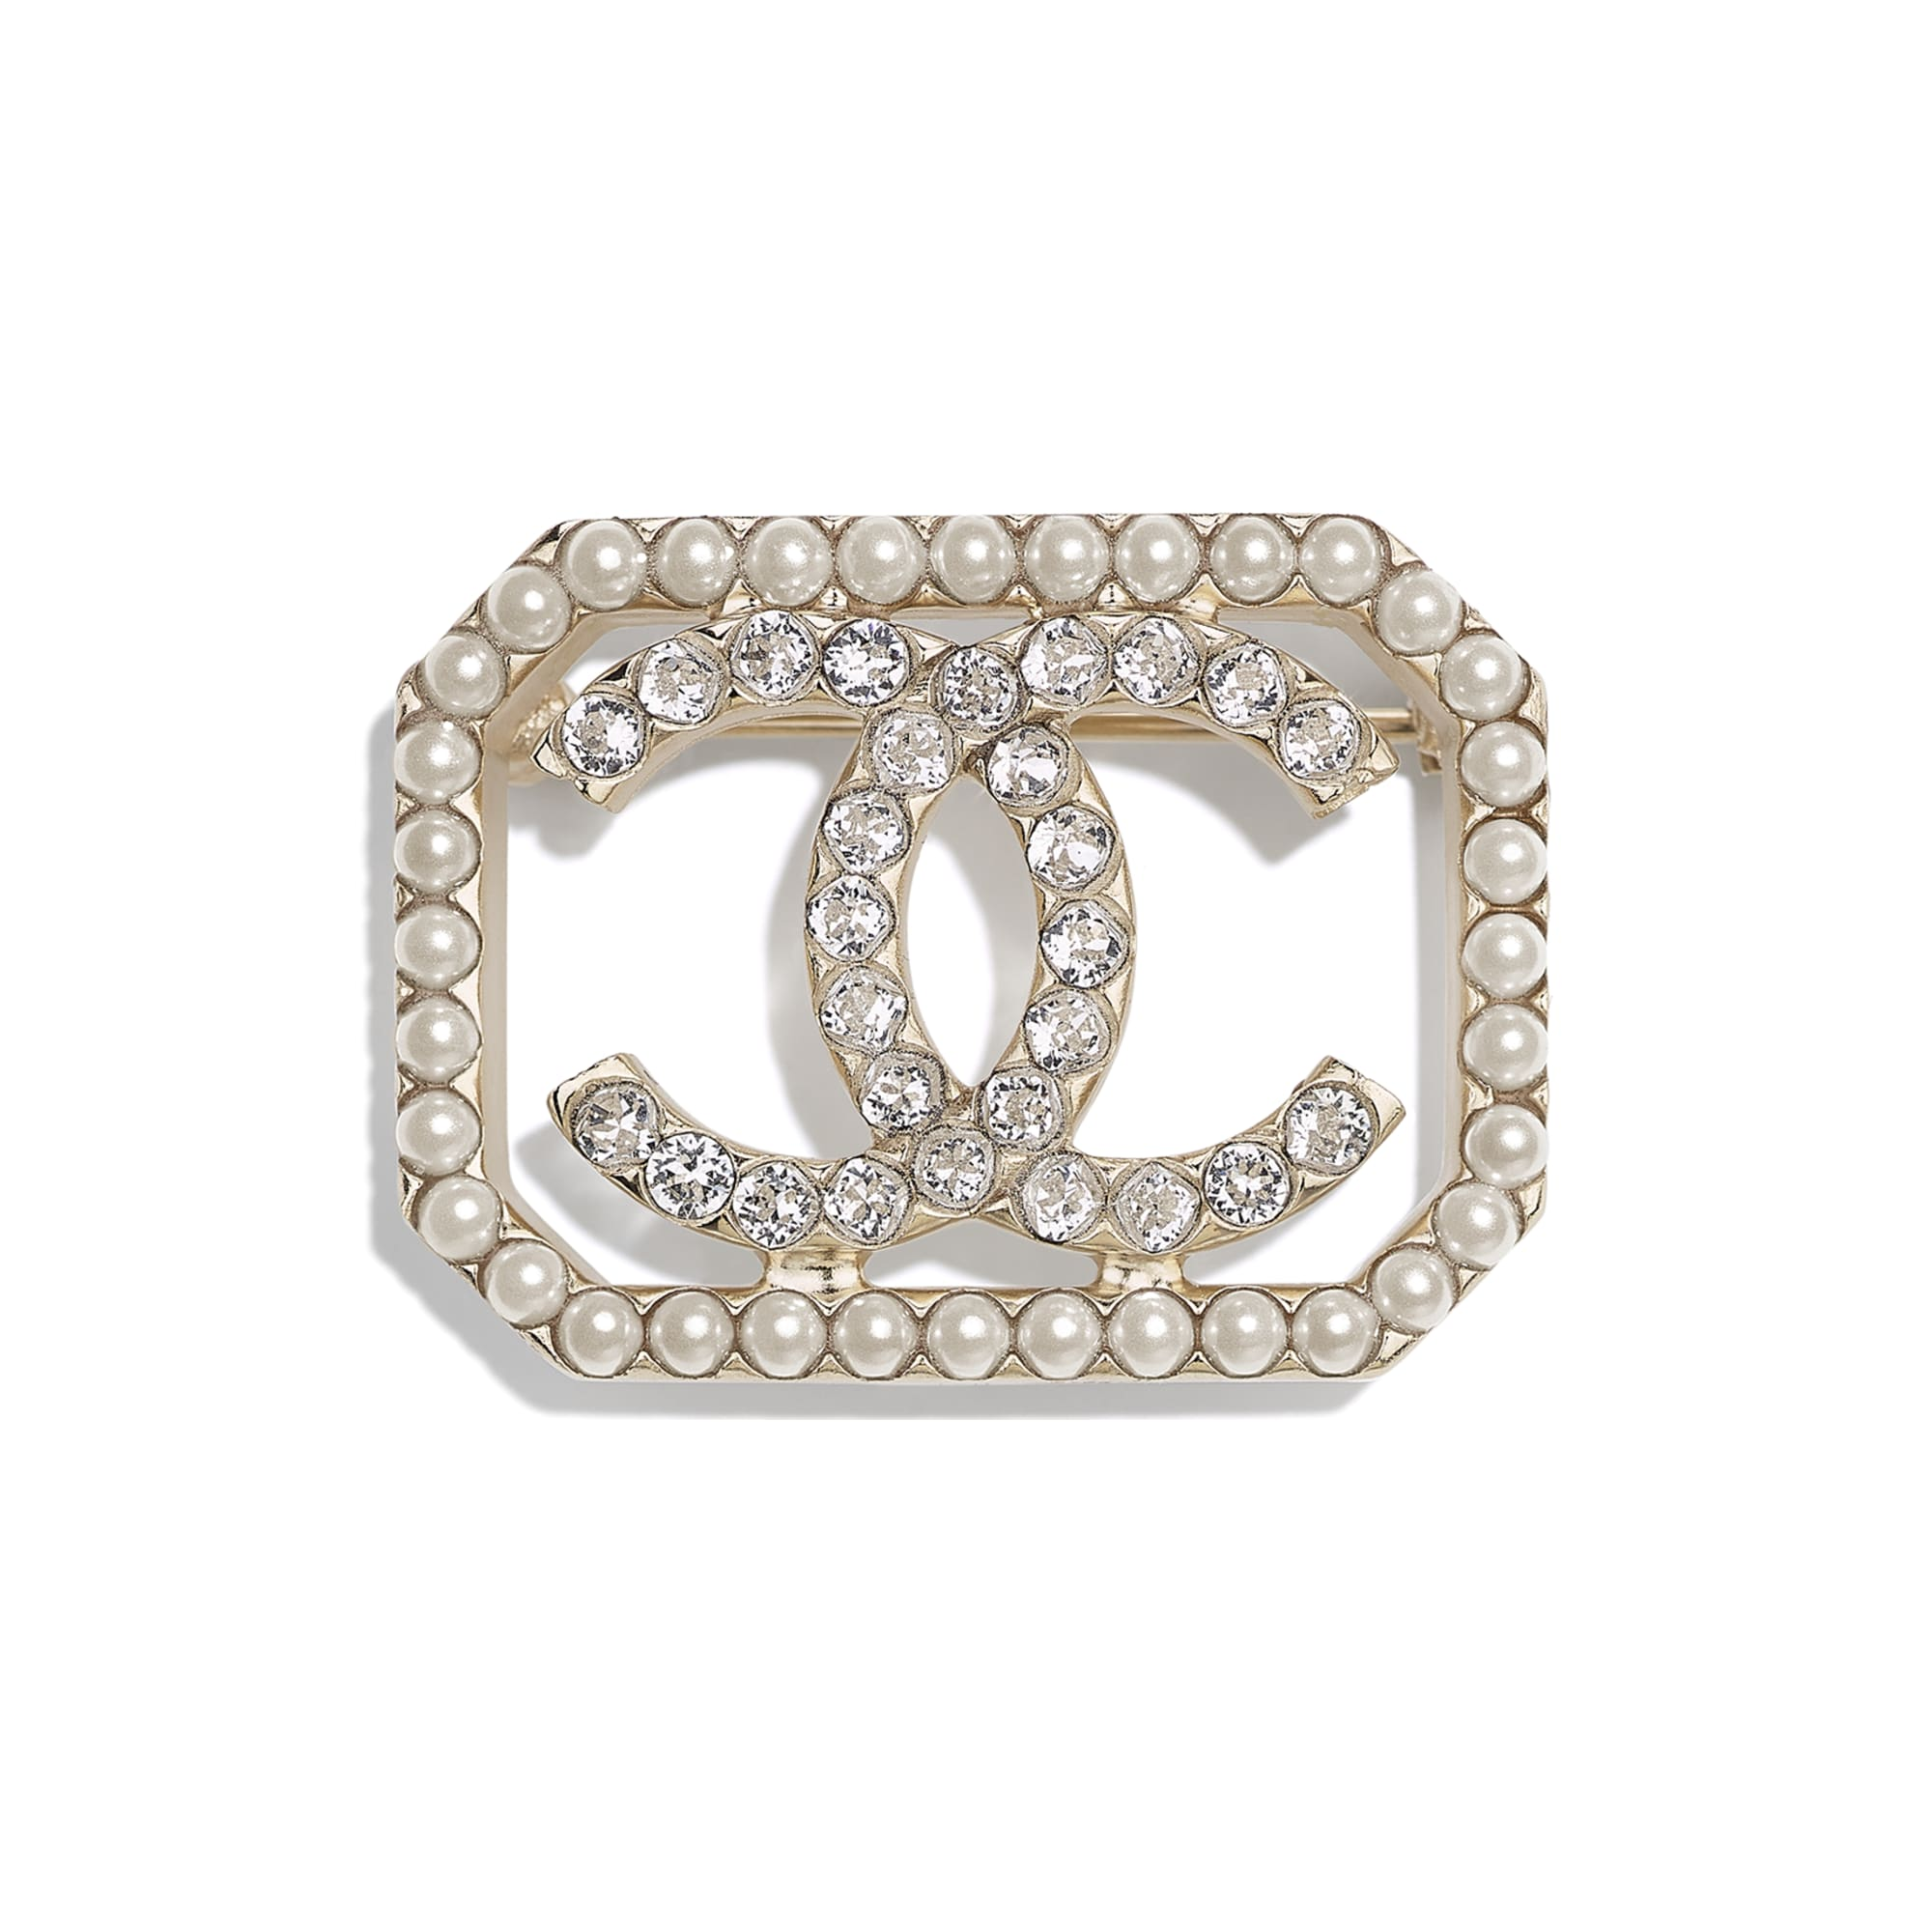 Brooch - Gold, Pearly White & Crystal - Metal, Imitation Pearls & Strass - CHANEL - Default view - see standard sized version